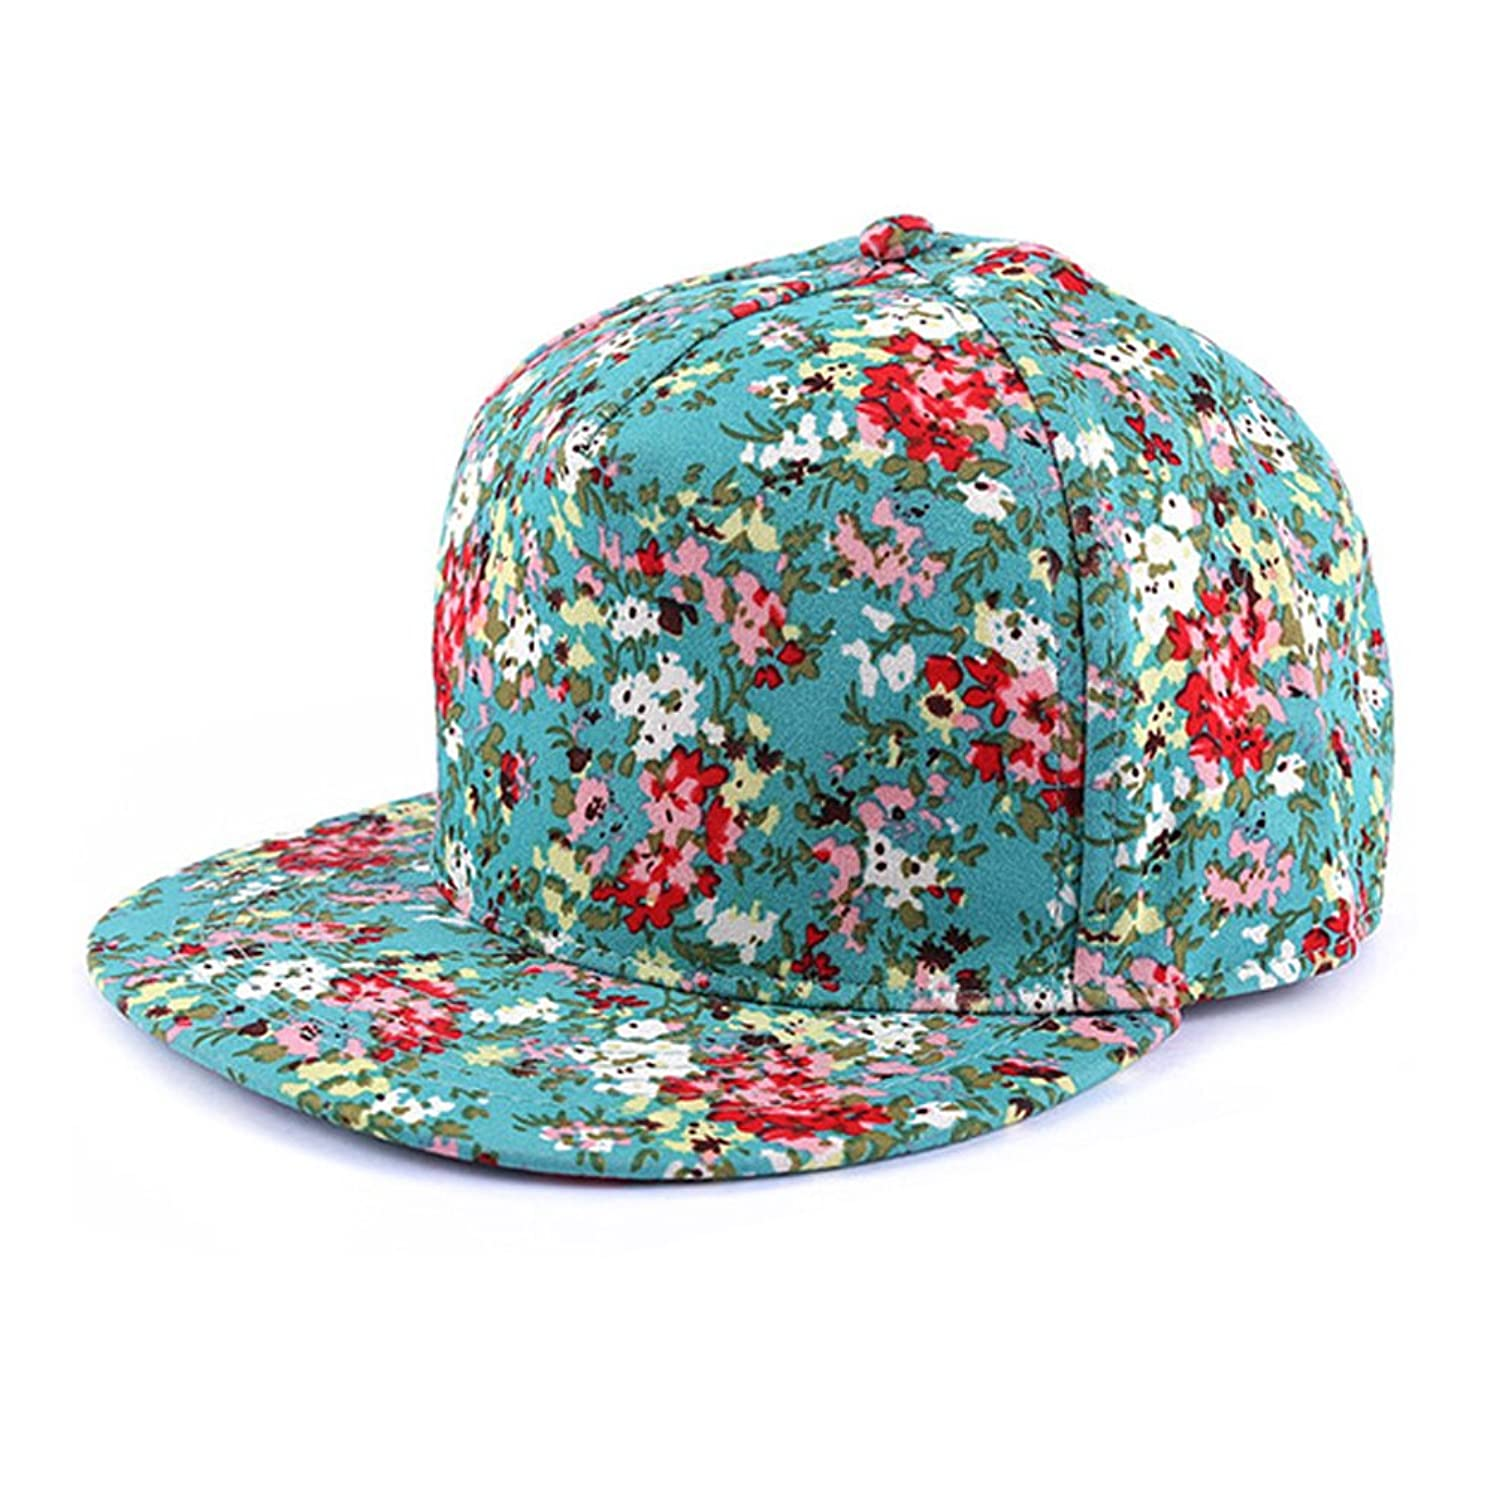 ZLYC Women Fashion Floral Print Adjustable Casual Snapback Baseball Cap Hat xthree new fashion high quality faux leather cap fall winter hat casual snapback baseball cap for men women hat wholesale